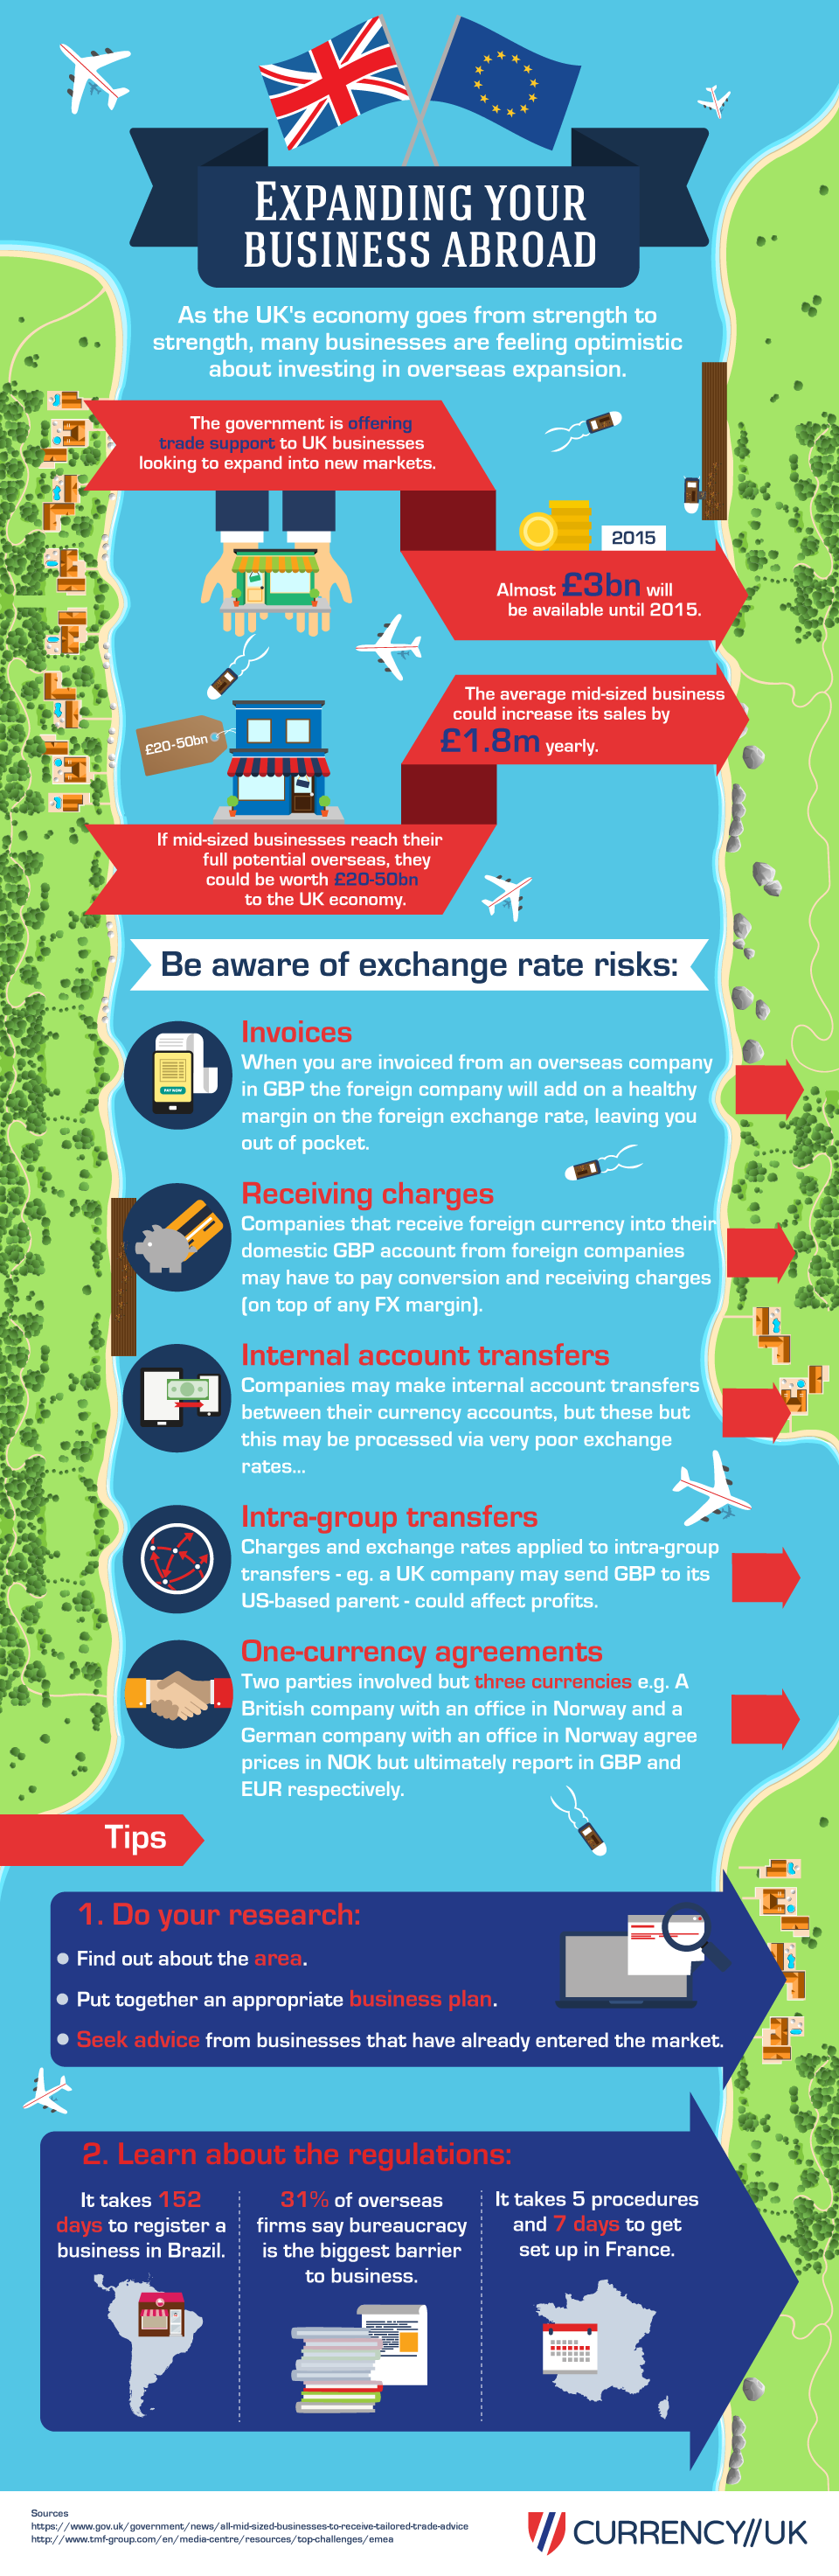 Currency-UK-Expanding-Your-Business-Abroad-infographic-plaza